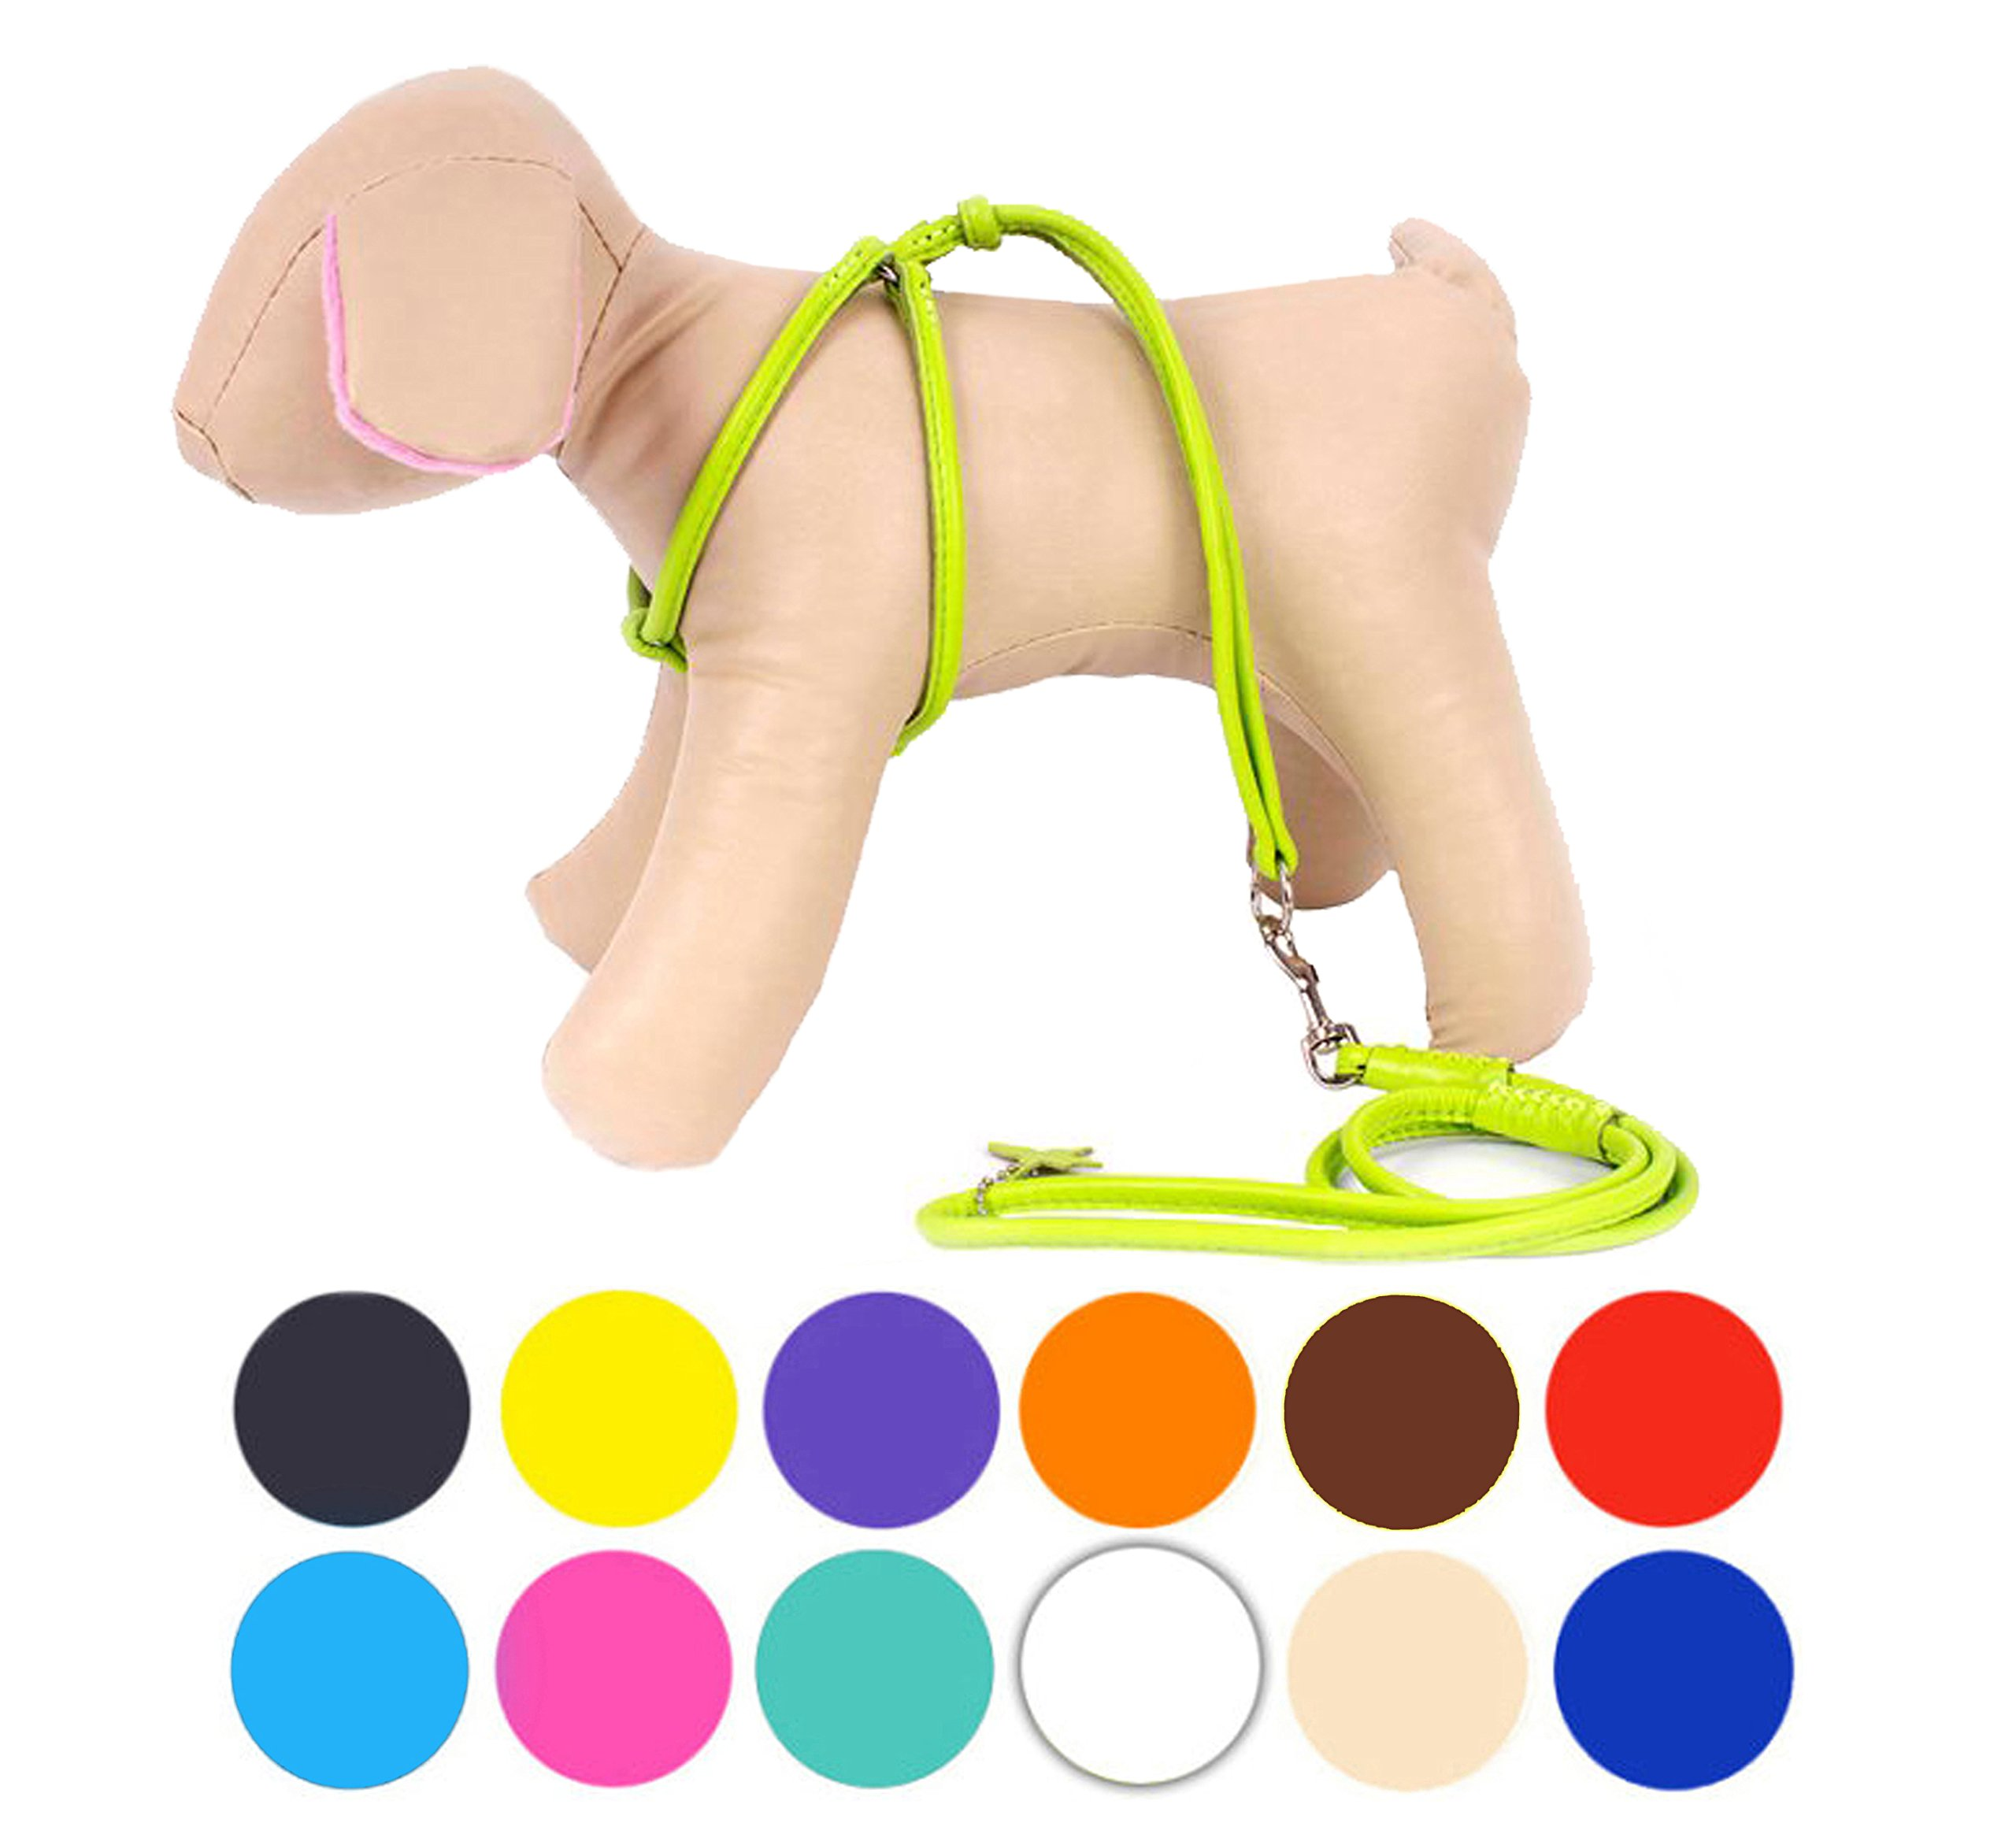 CollarDirect Rolled Leather Dog Harness Small Puppy Step-In Leash Set Walking Pink Red White Blue Green Black Purple Beige Brown Yellow (Lime Green, XS)